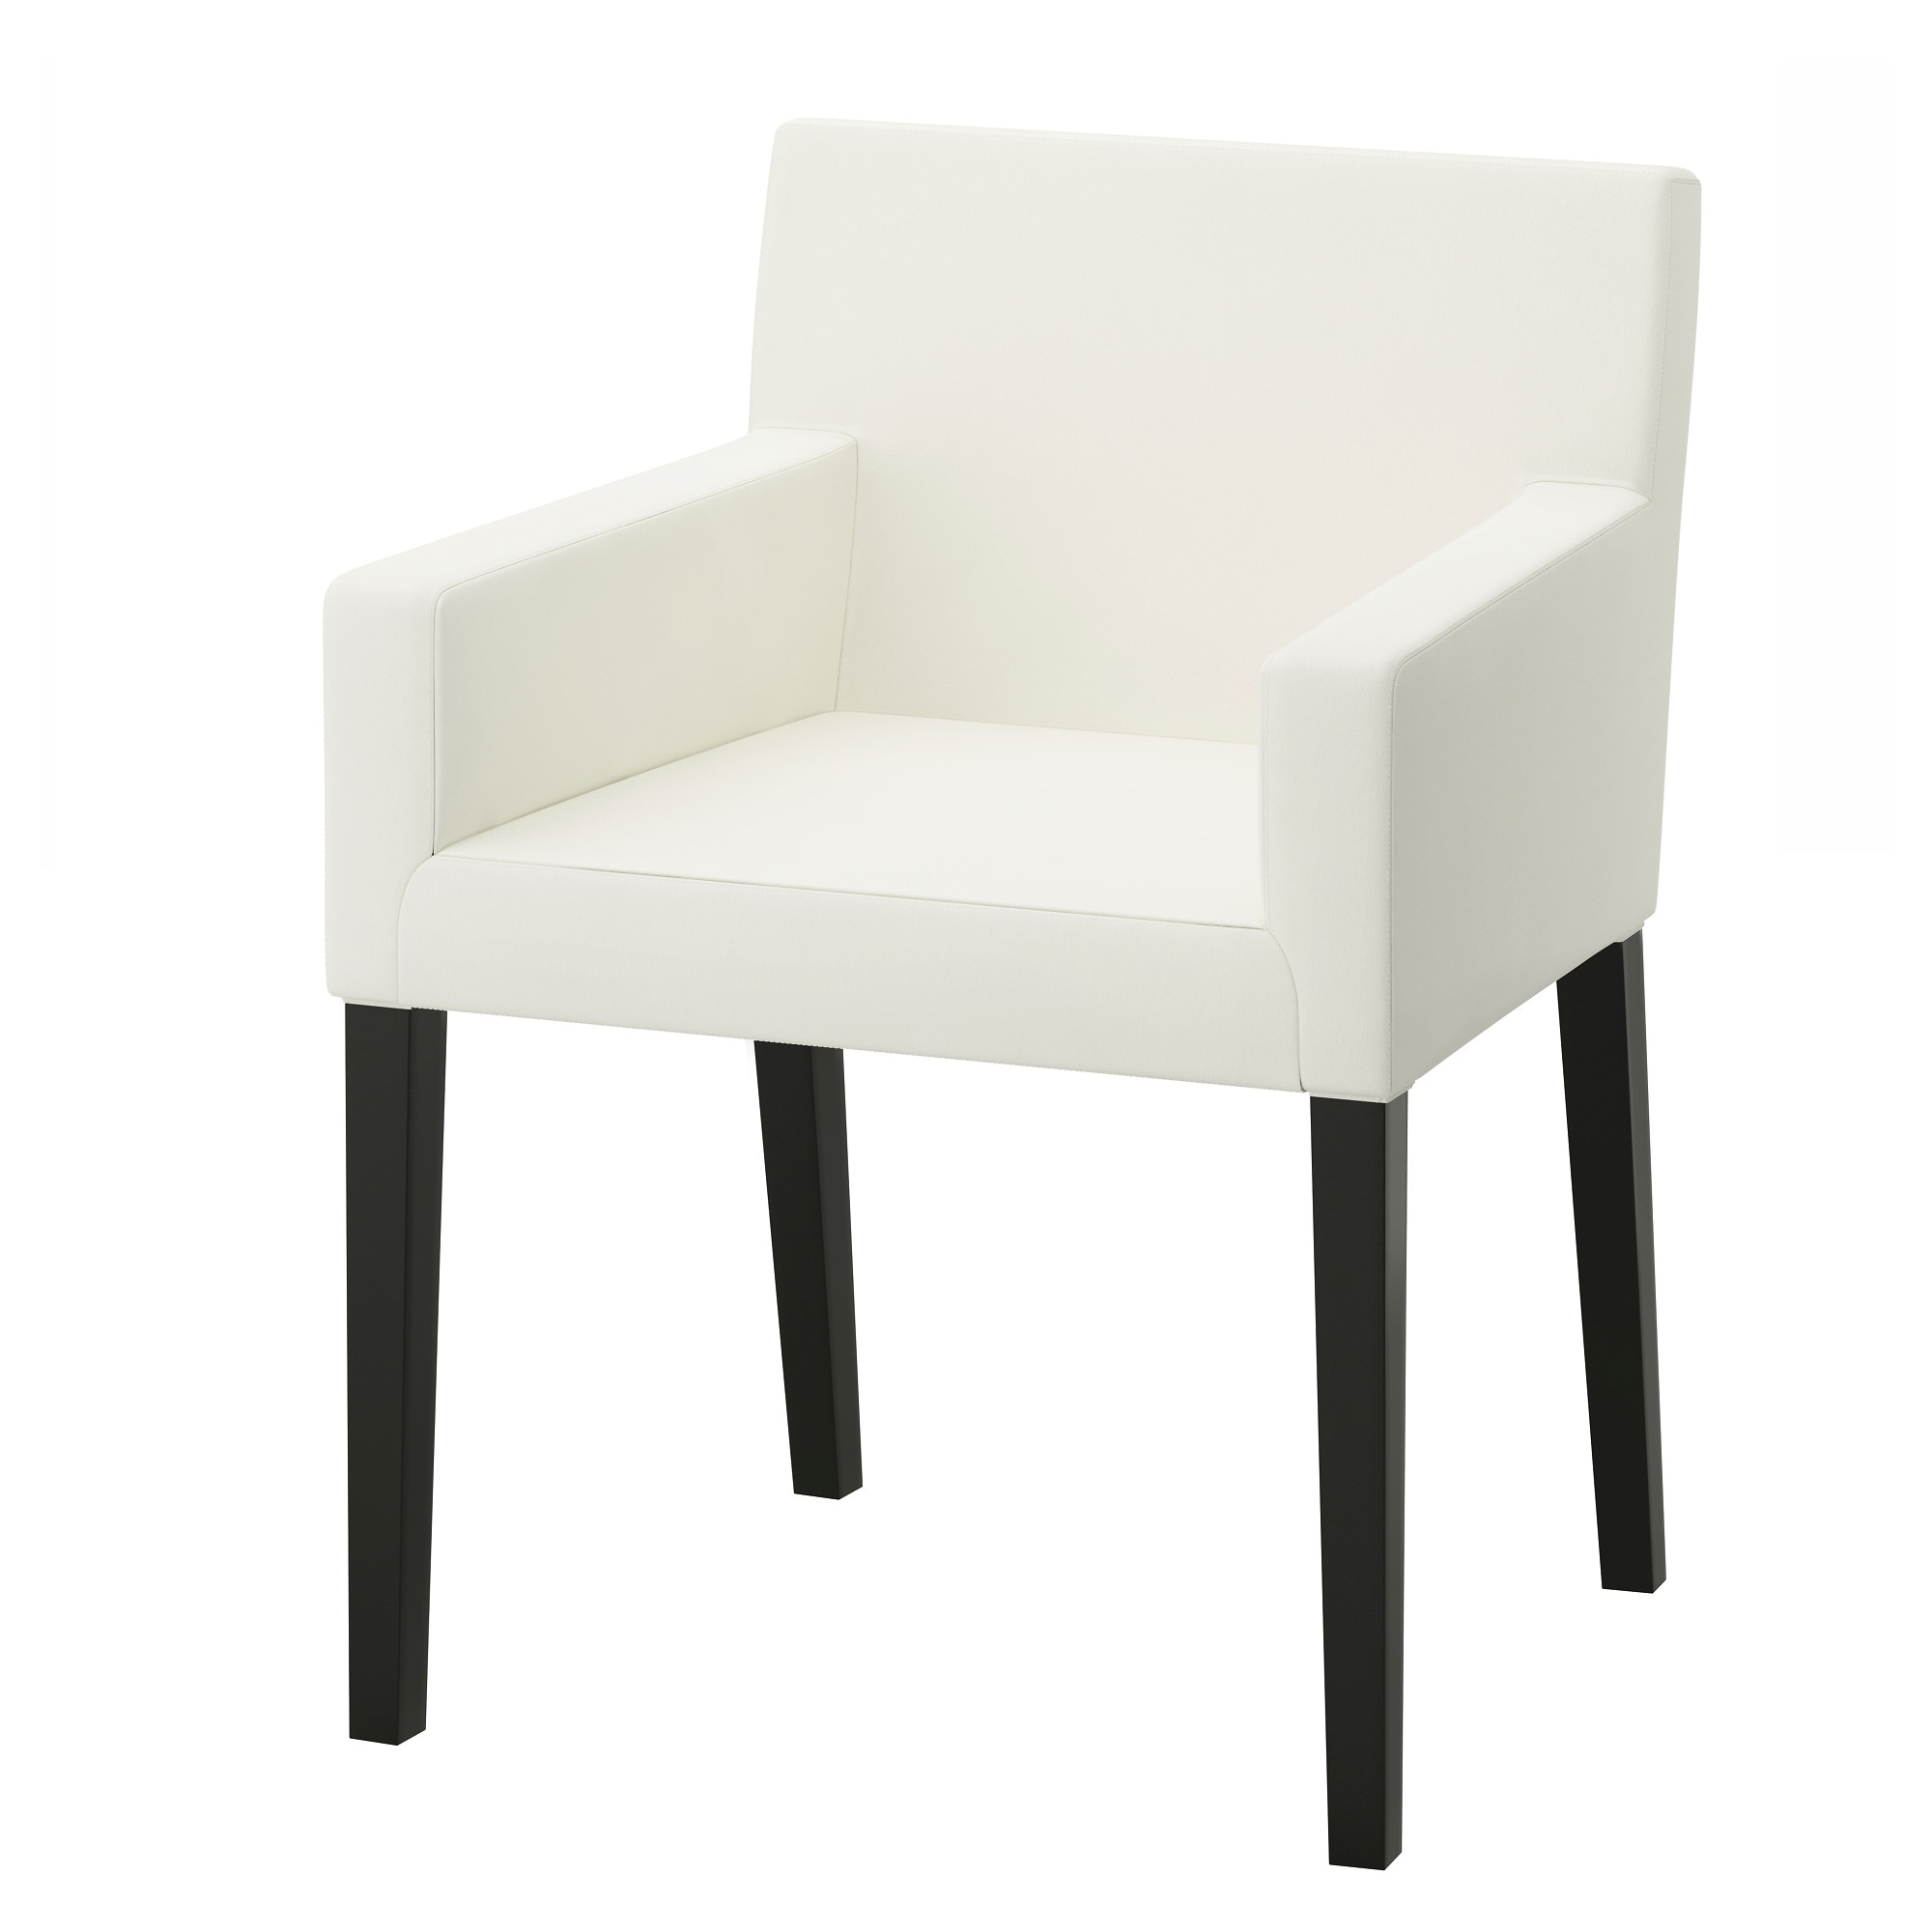 nils armchair black blekinge white tested for 243 lb width 23 5